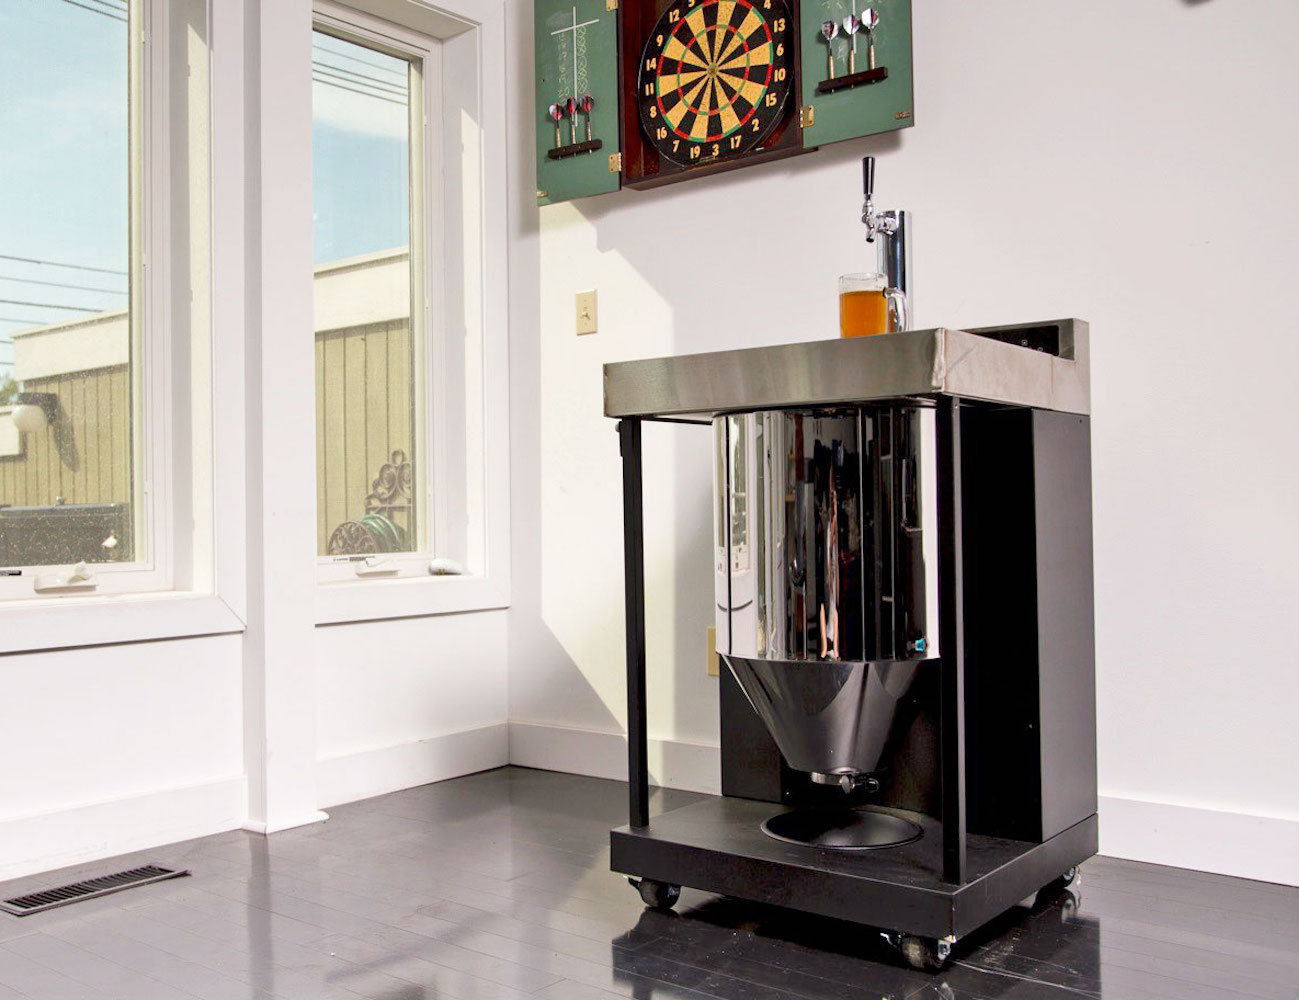 Vessi Fermentor – Home Beer Brewing System